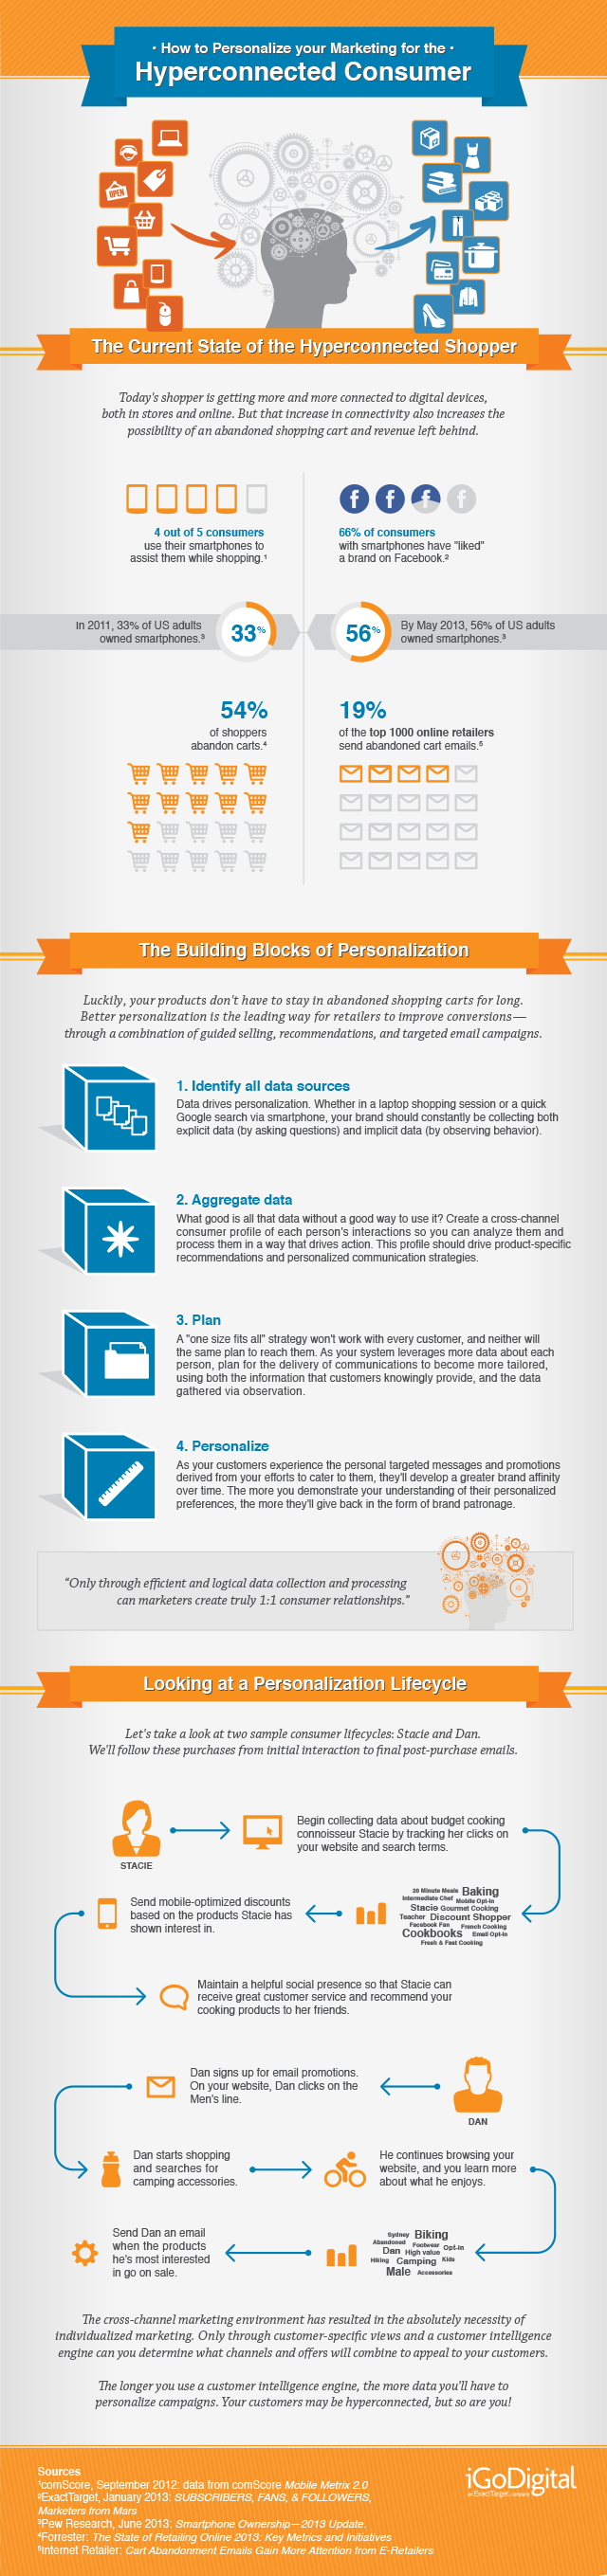 The ExactTarget Blog How to Personalize Marketing for the Digital Consumer #Infographic » The ExactTarget Blog